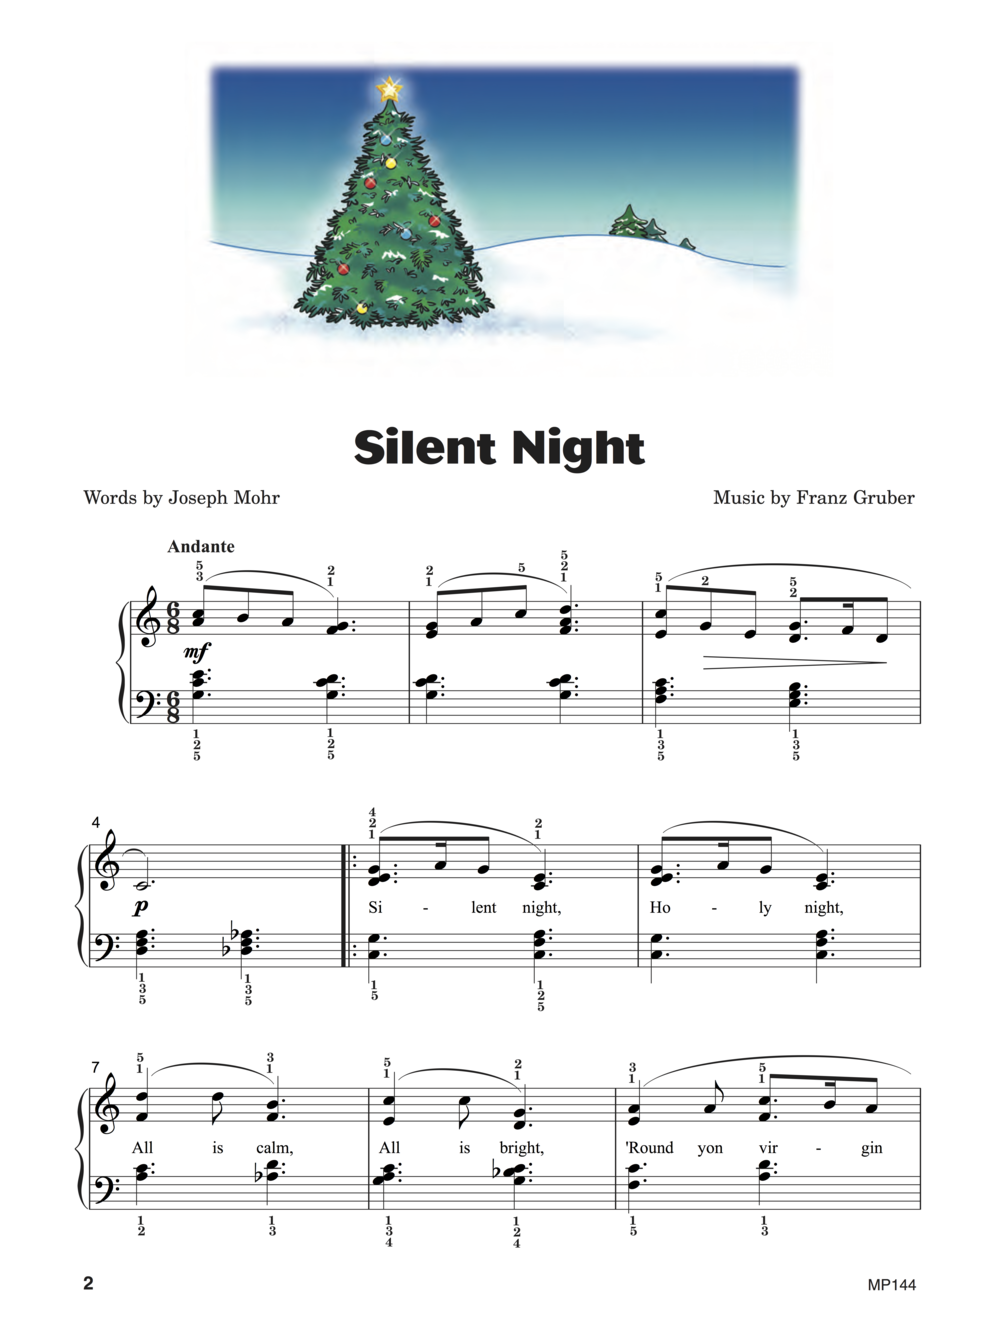 Silent Night  from  Keith Snell & Diane Hidy's Piano Town Christmas Level Four